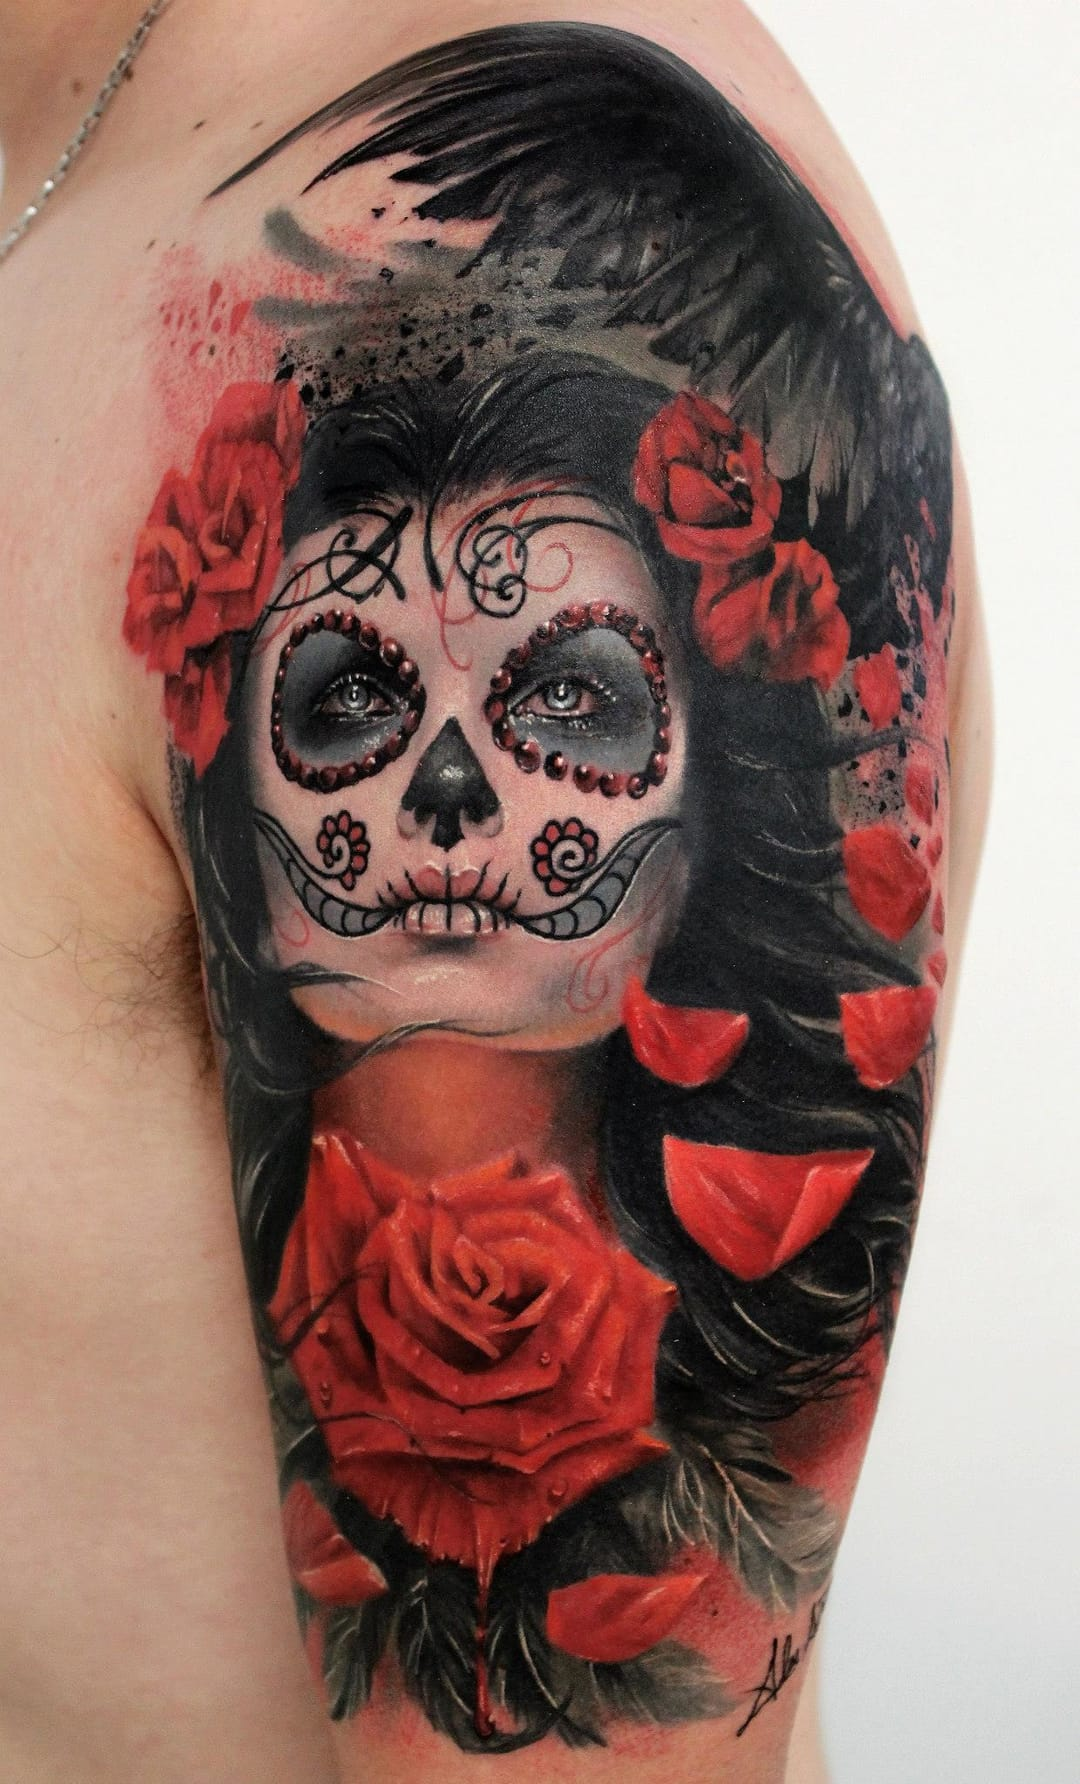 Can't get more closer to perfection, by realism master Alex De Pase...